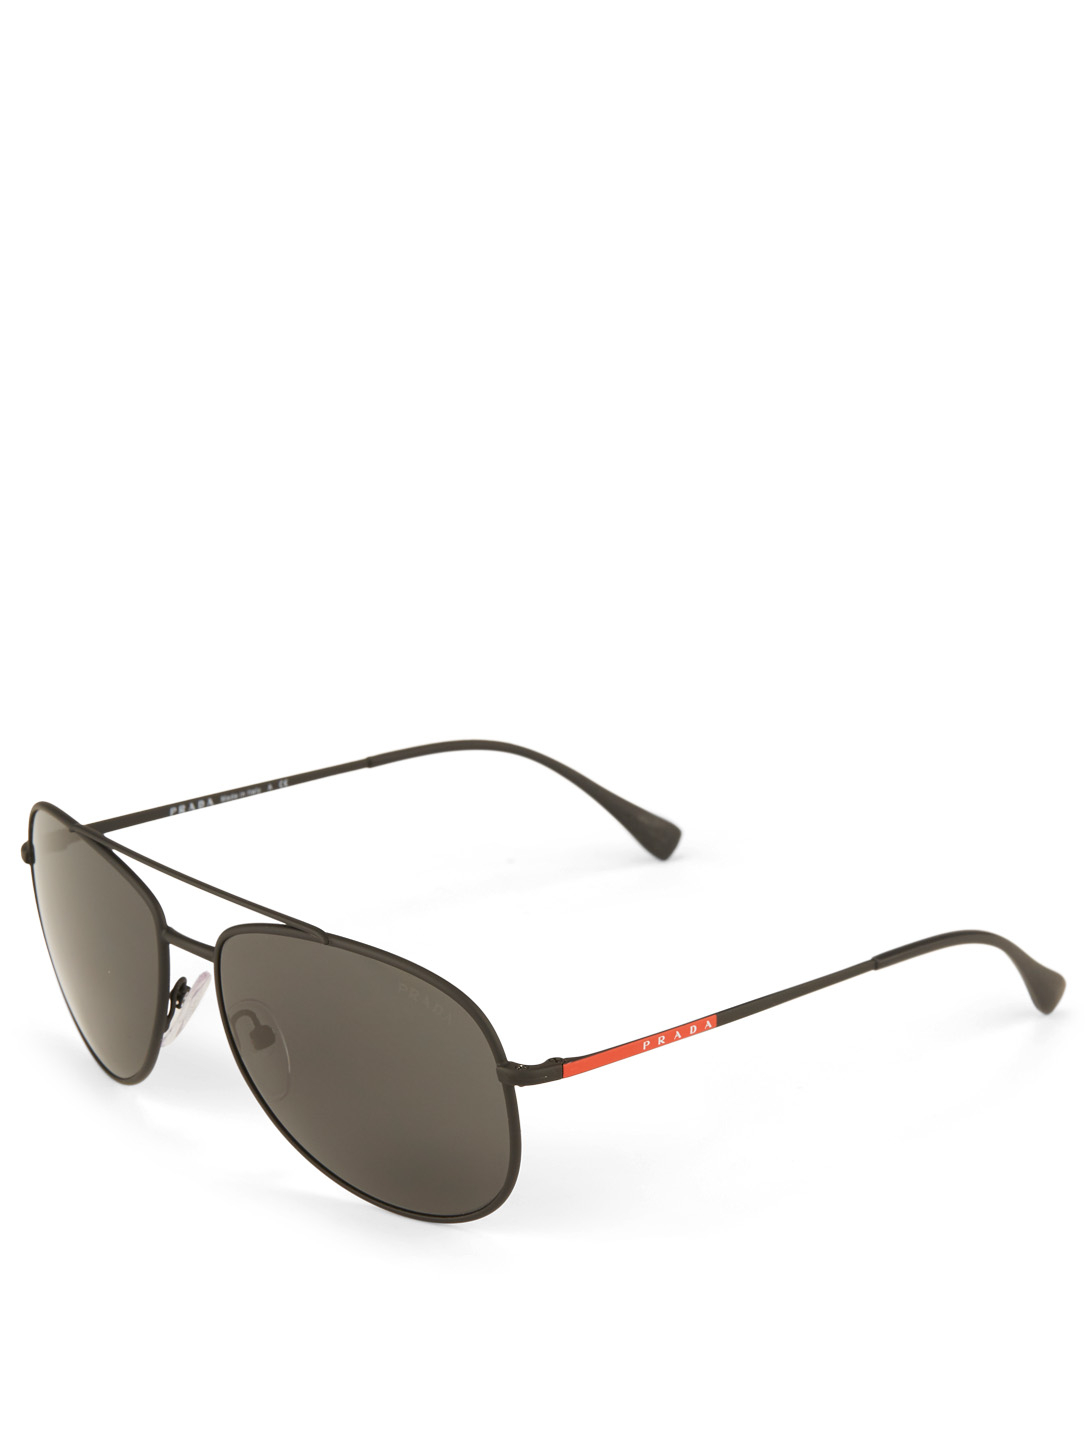 PRADA Aviator Sunglasses Designers Black